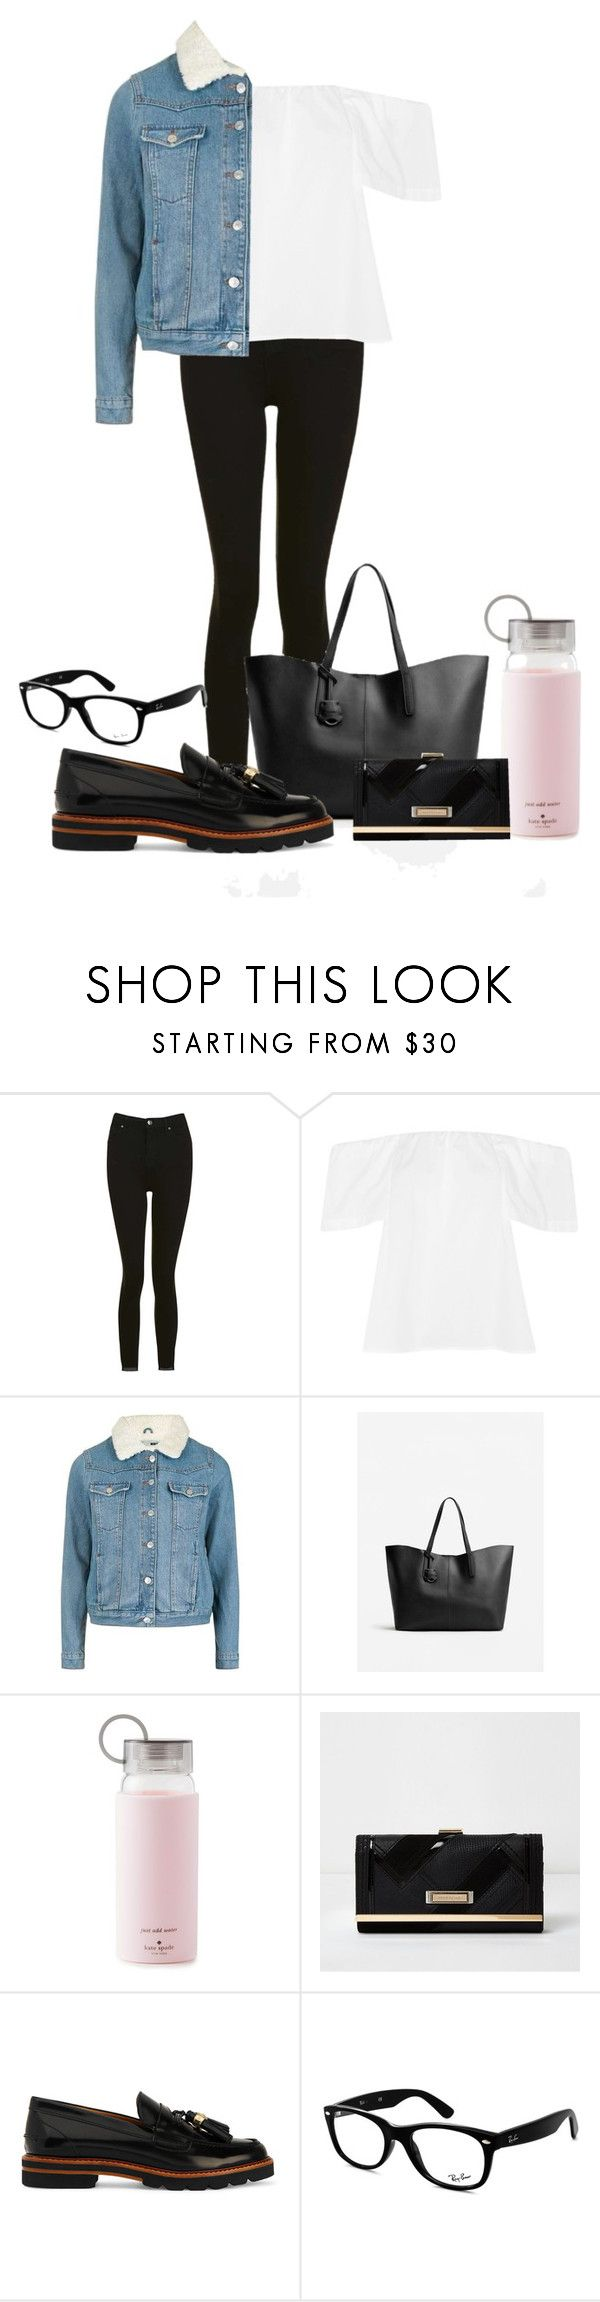 """Trend Outfit"" by ellirose-jackson ❤ liked on Polyvore featuring Topshop, MANGO, Kate Spade, River Island, Stuart Weitzman and Ray-Ban"